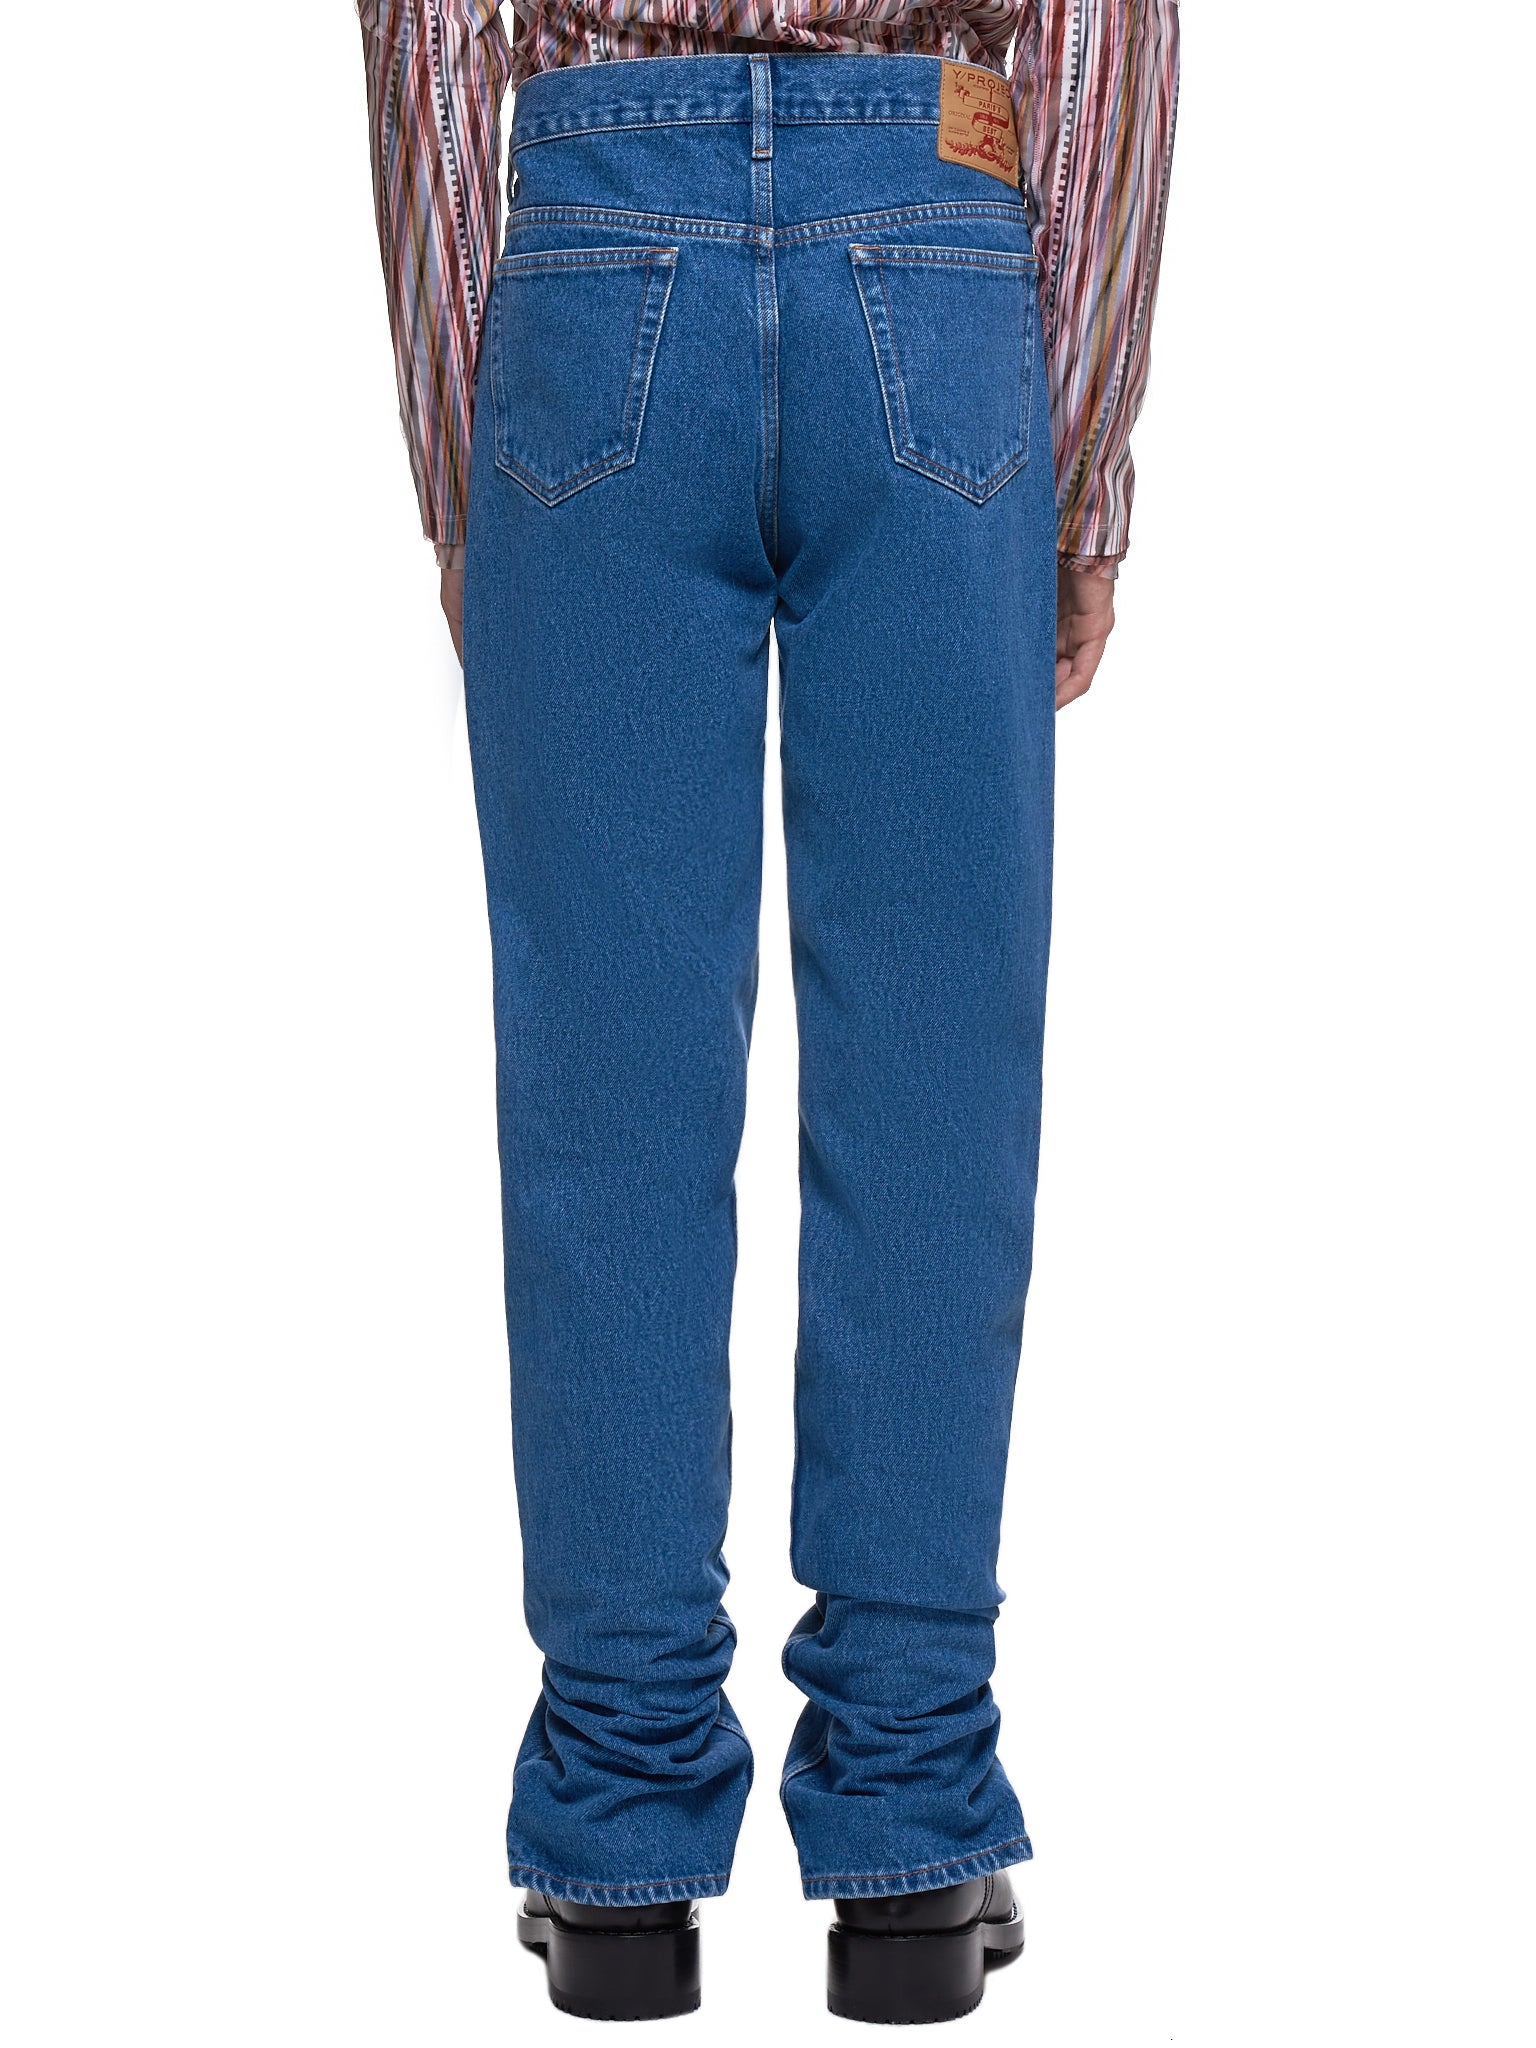 Ice Blue Jeans (JEAN24-S18-D05-ICE-BLUE)